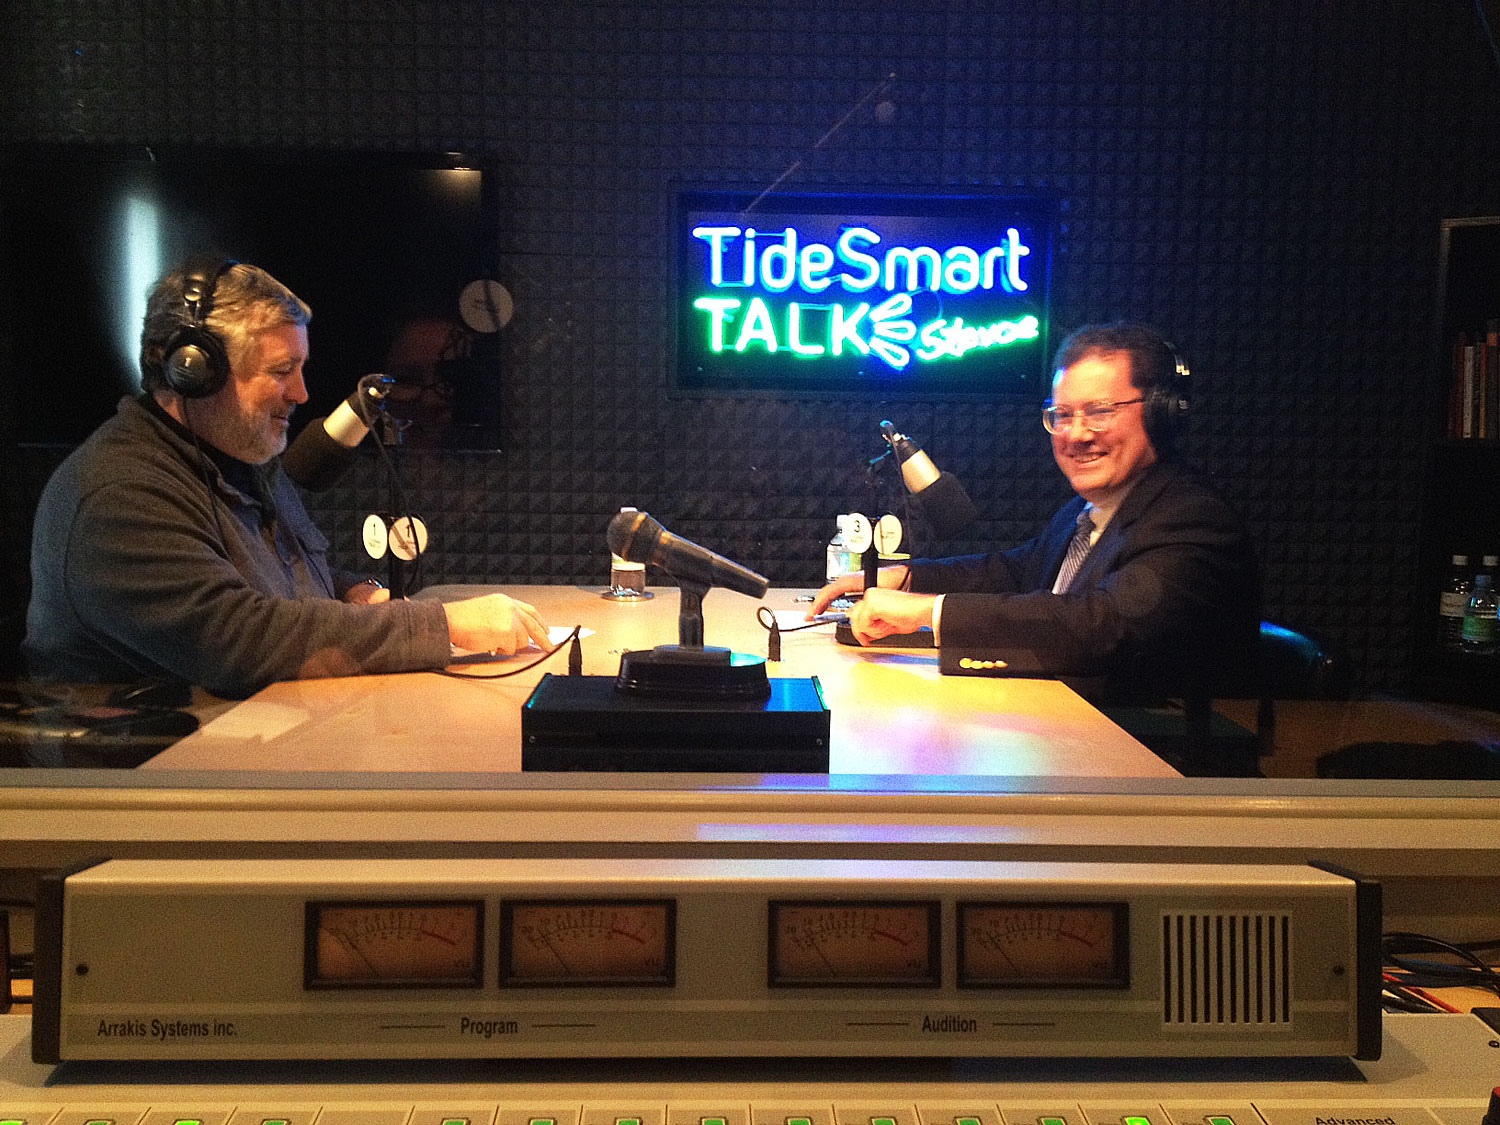 Host of TideSmart Talk with Stevoe, Steve Woods, welcomed Chairman of the ME PUC, Mark Vannoy (at right).